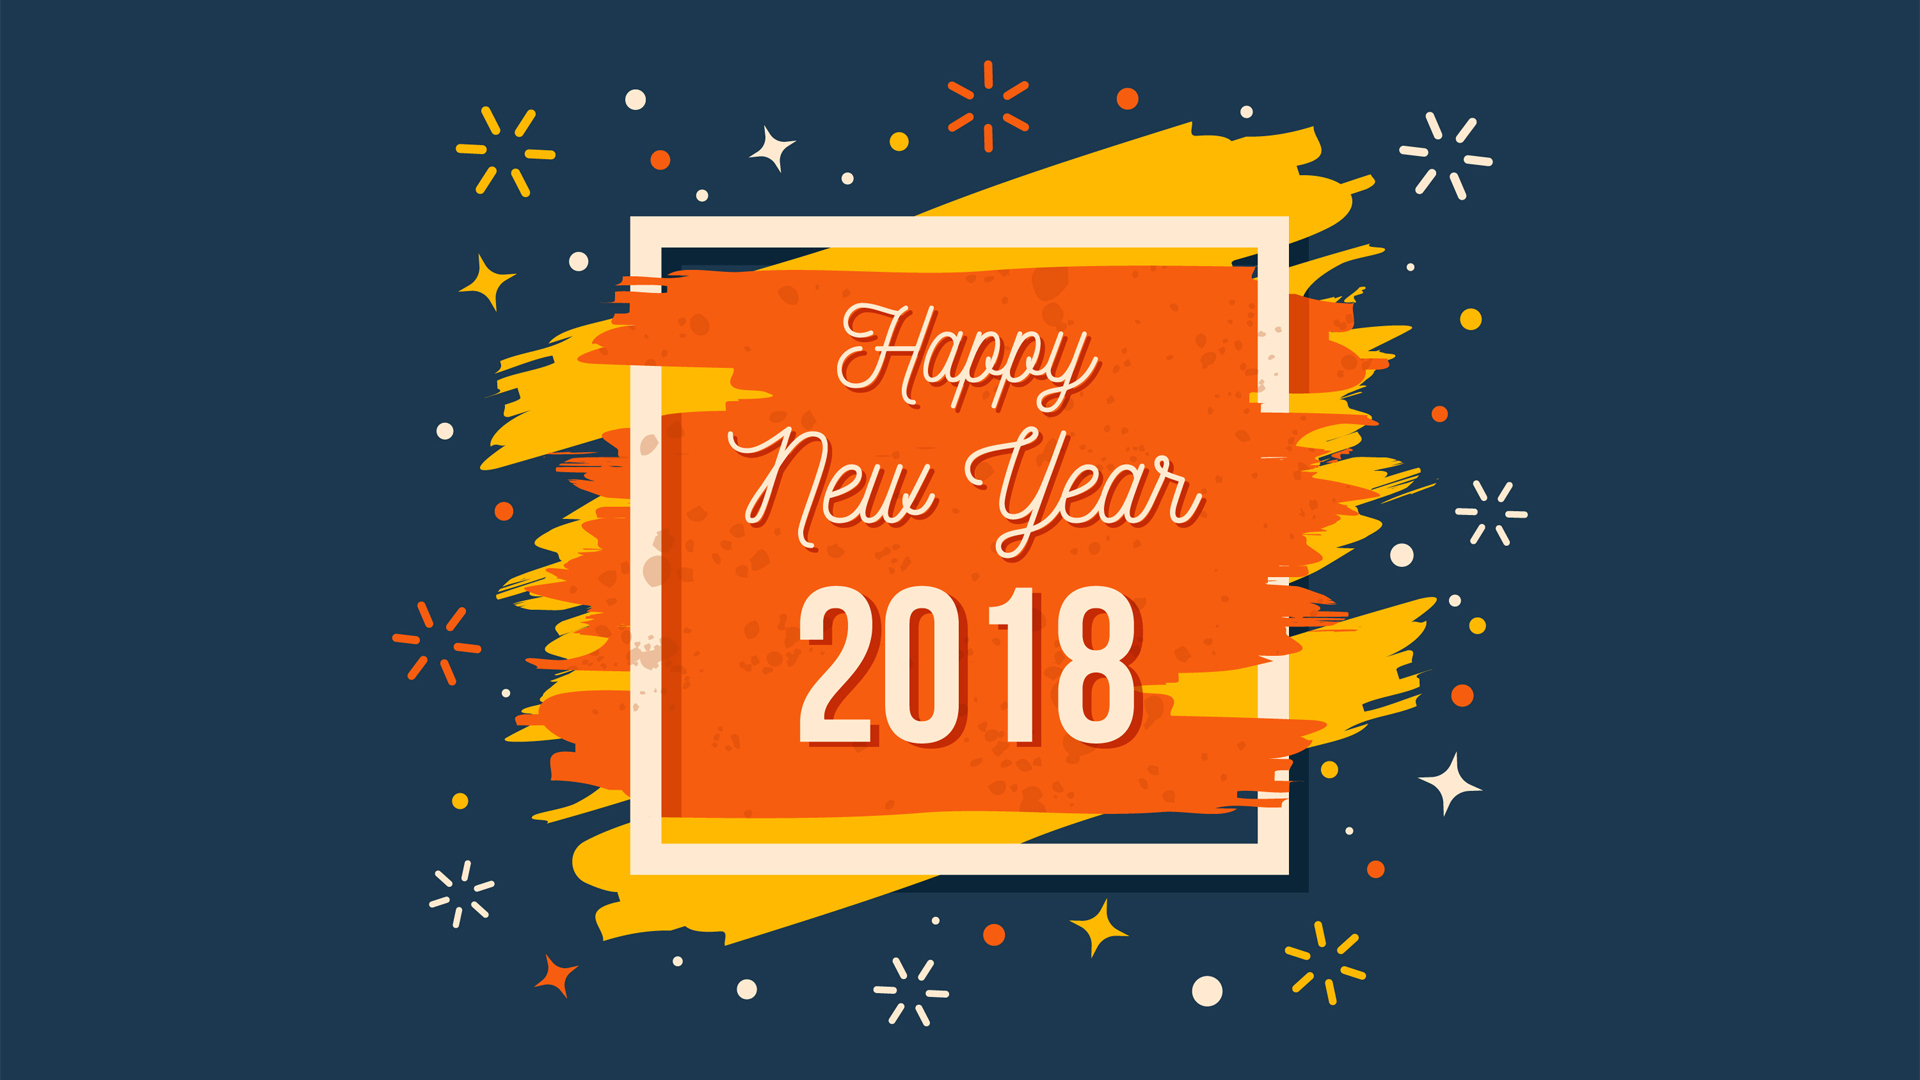 1284 download 2251 views happy new year 2018 hd photo background